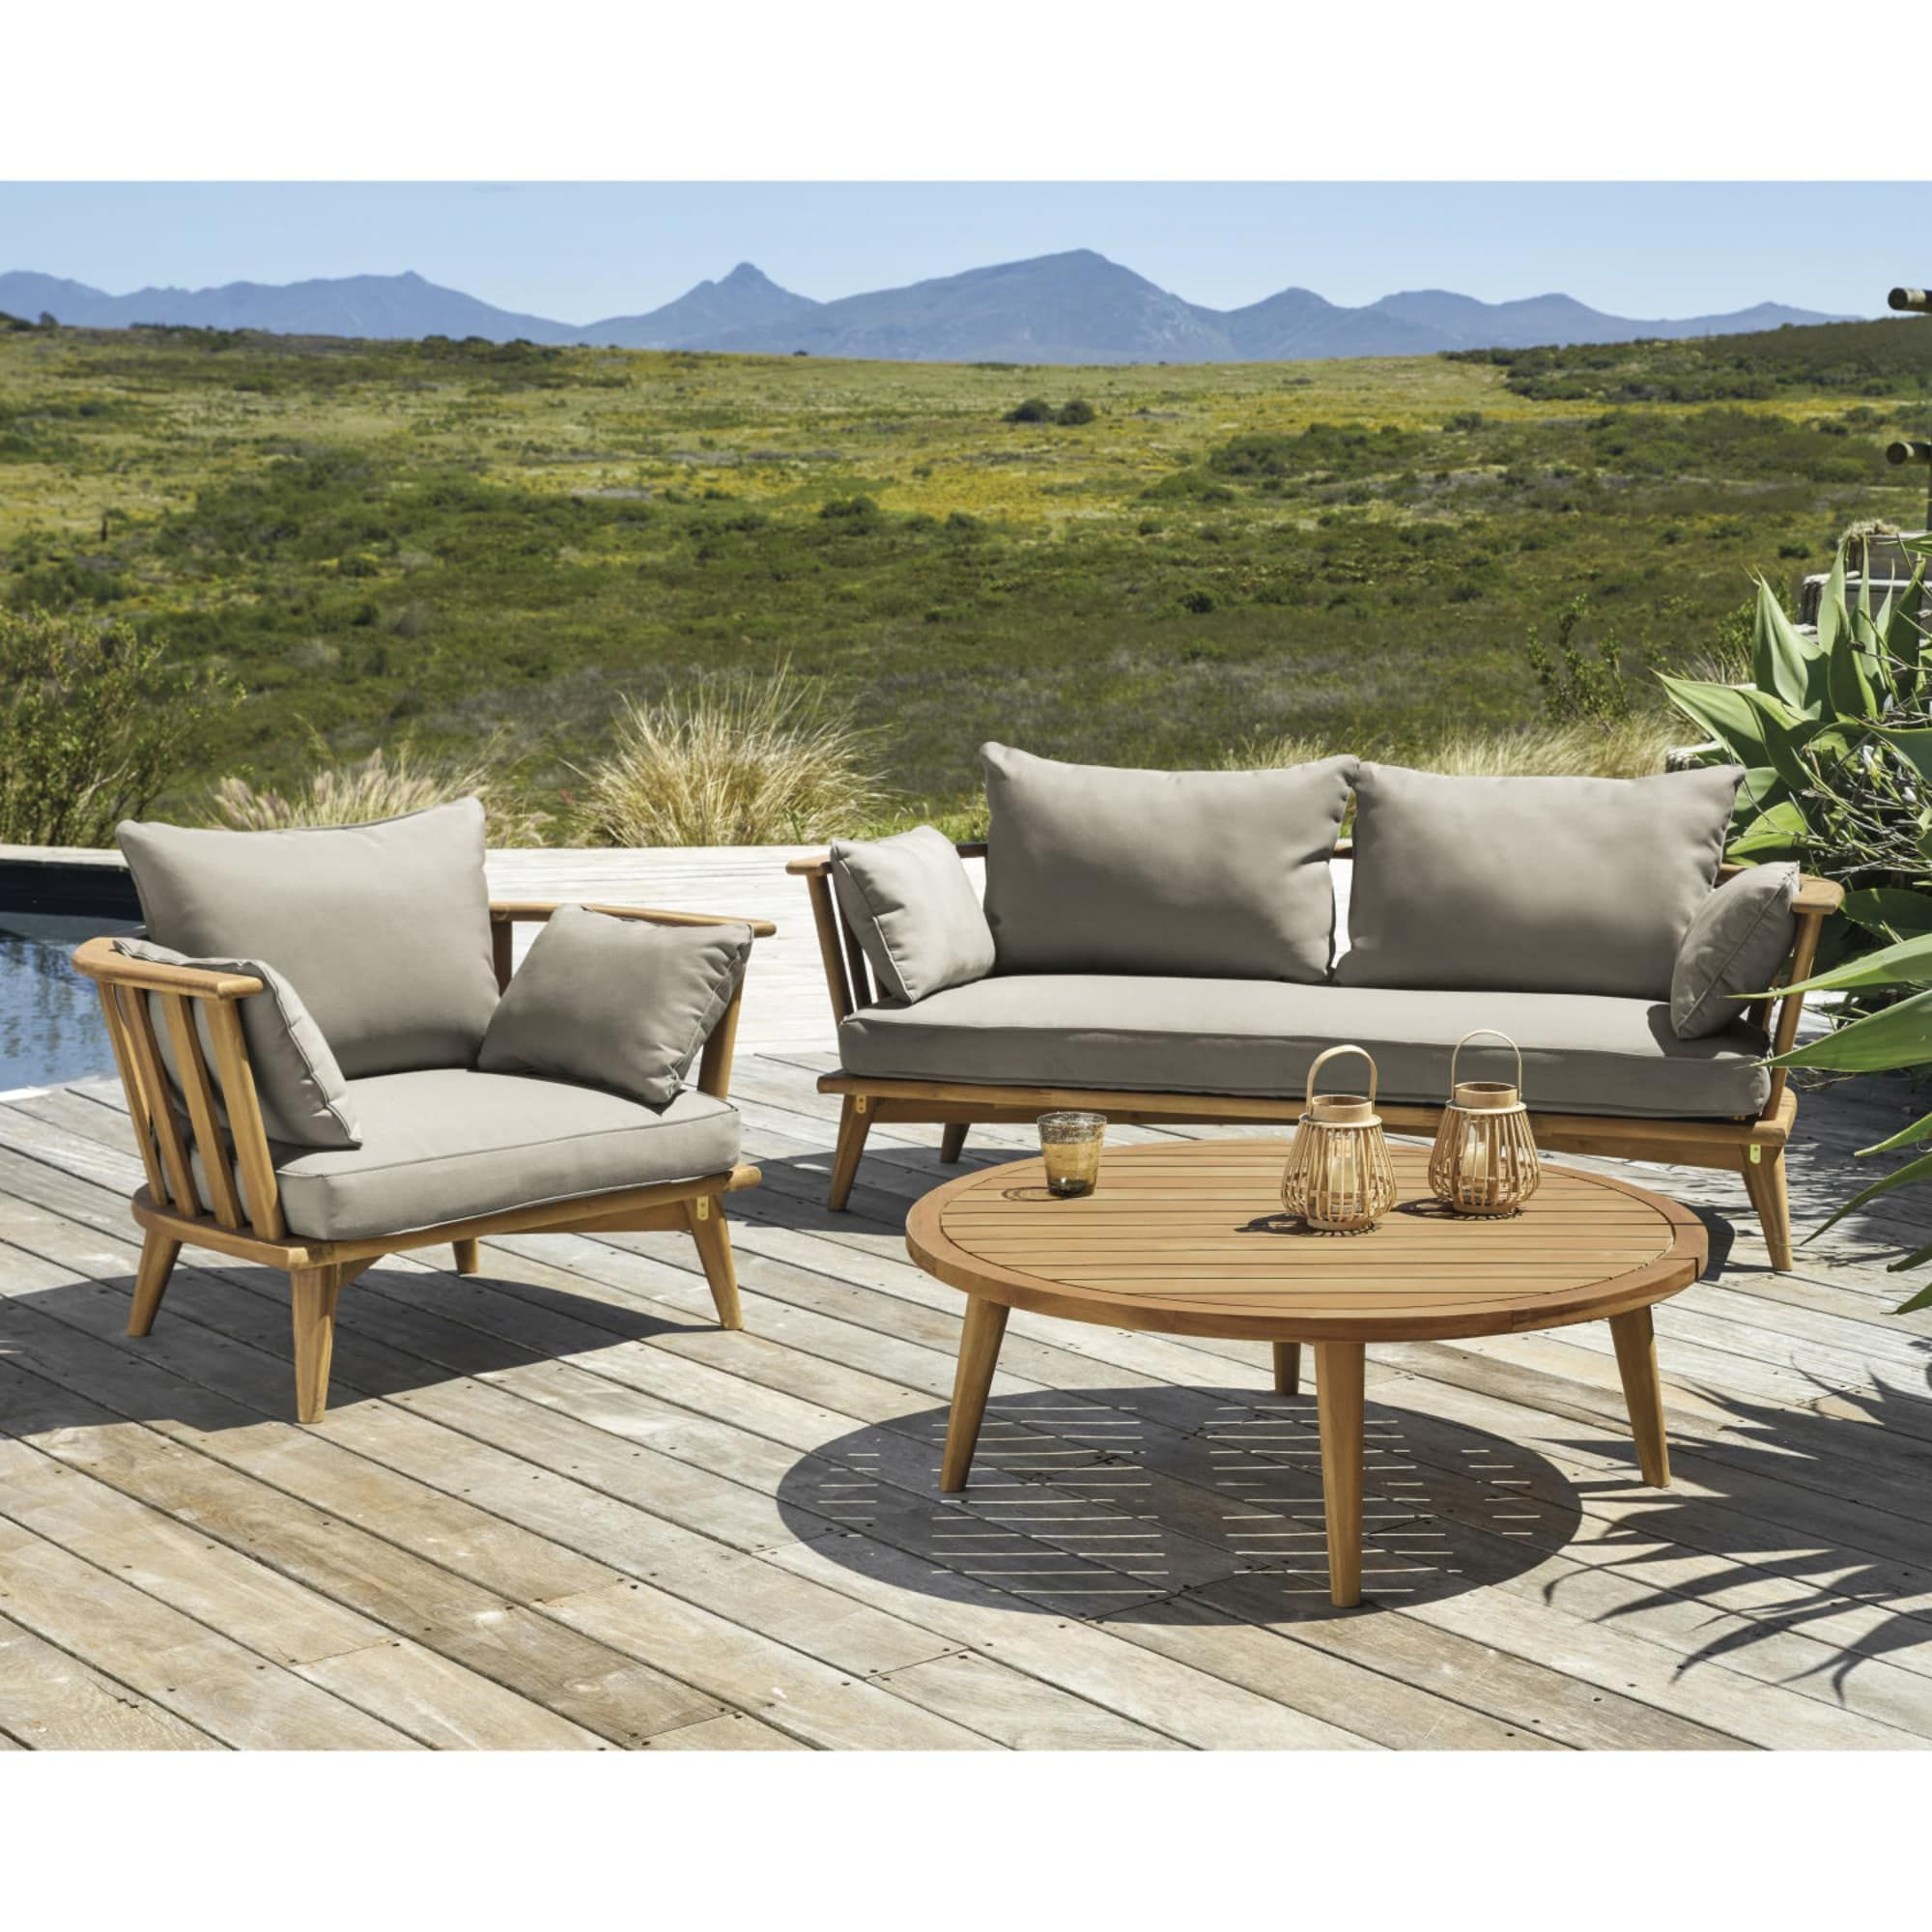 Outdoor Furniture Avec Images Salon De Jardin Bois Salon De